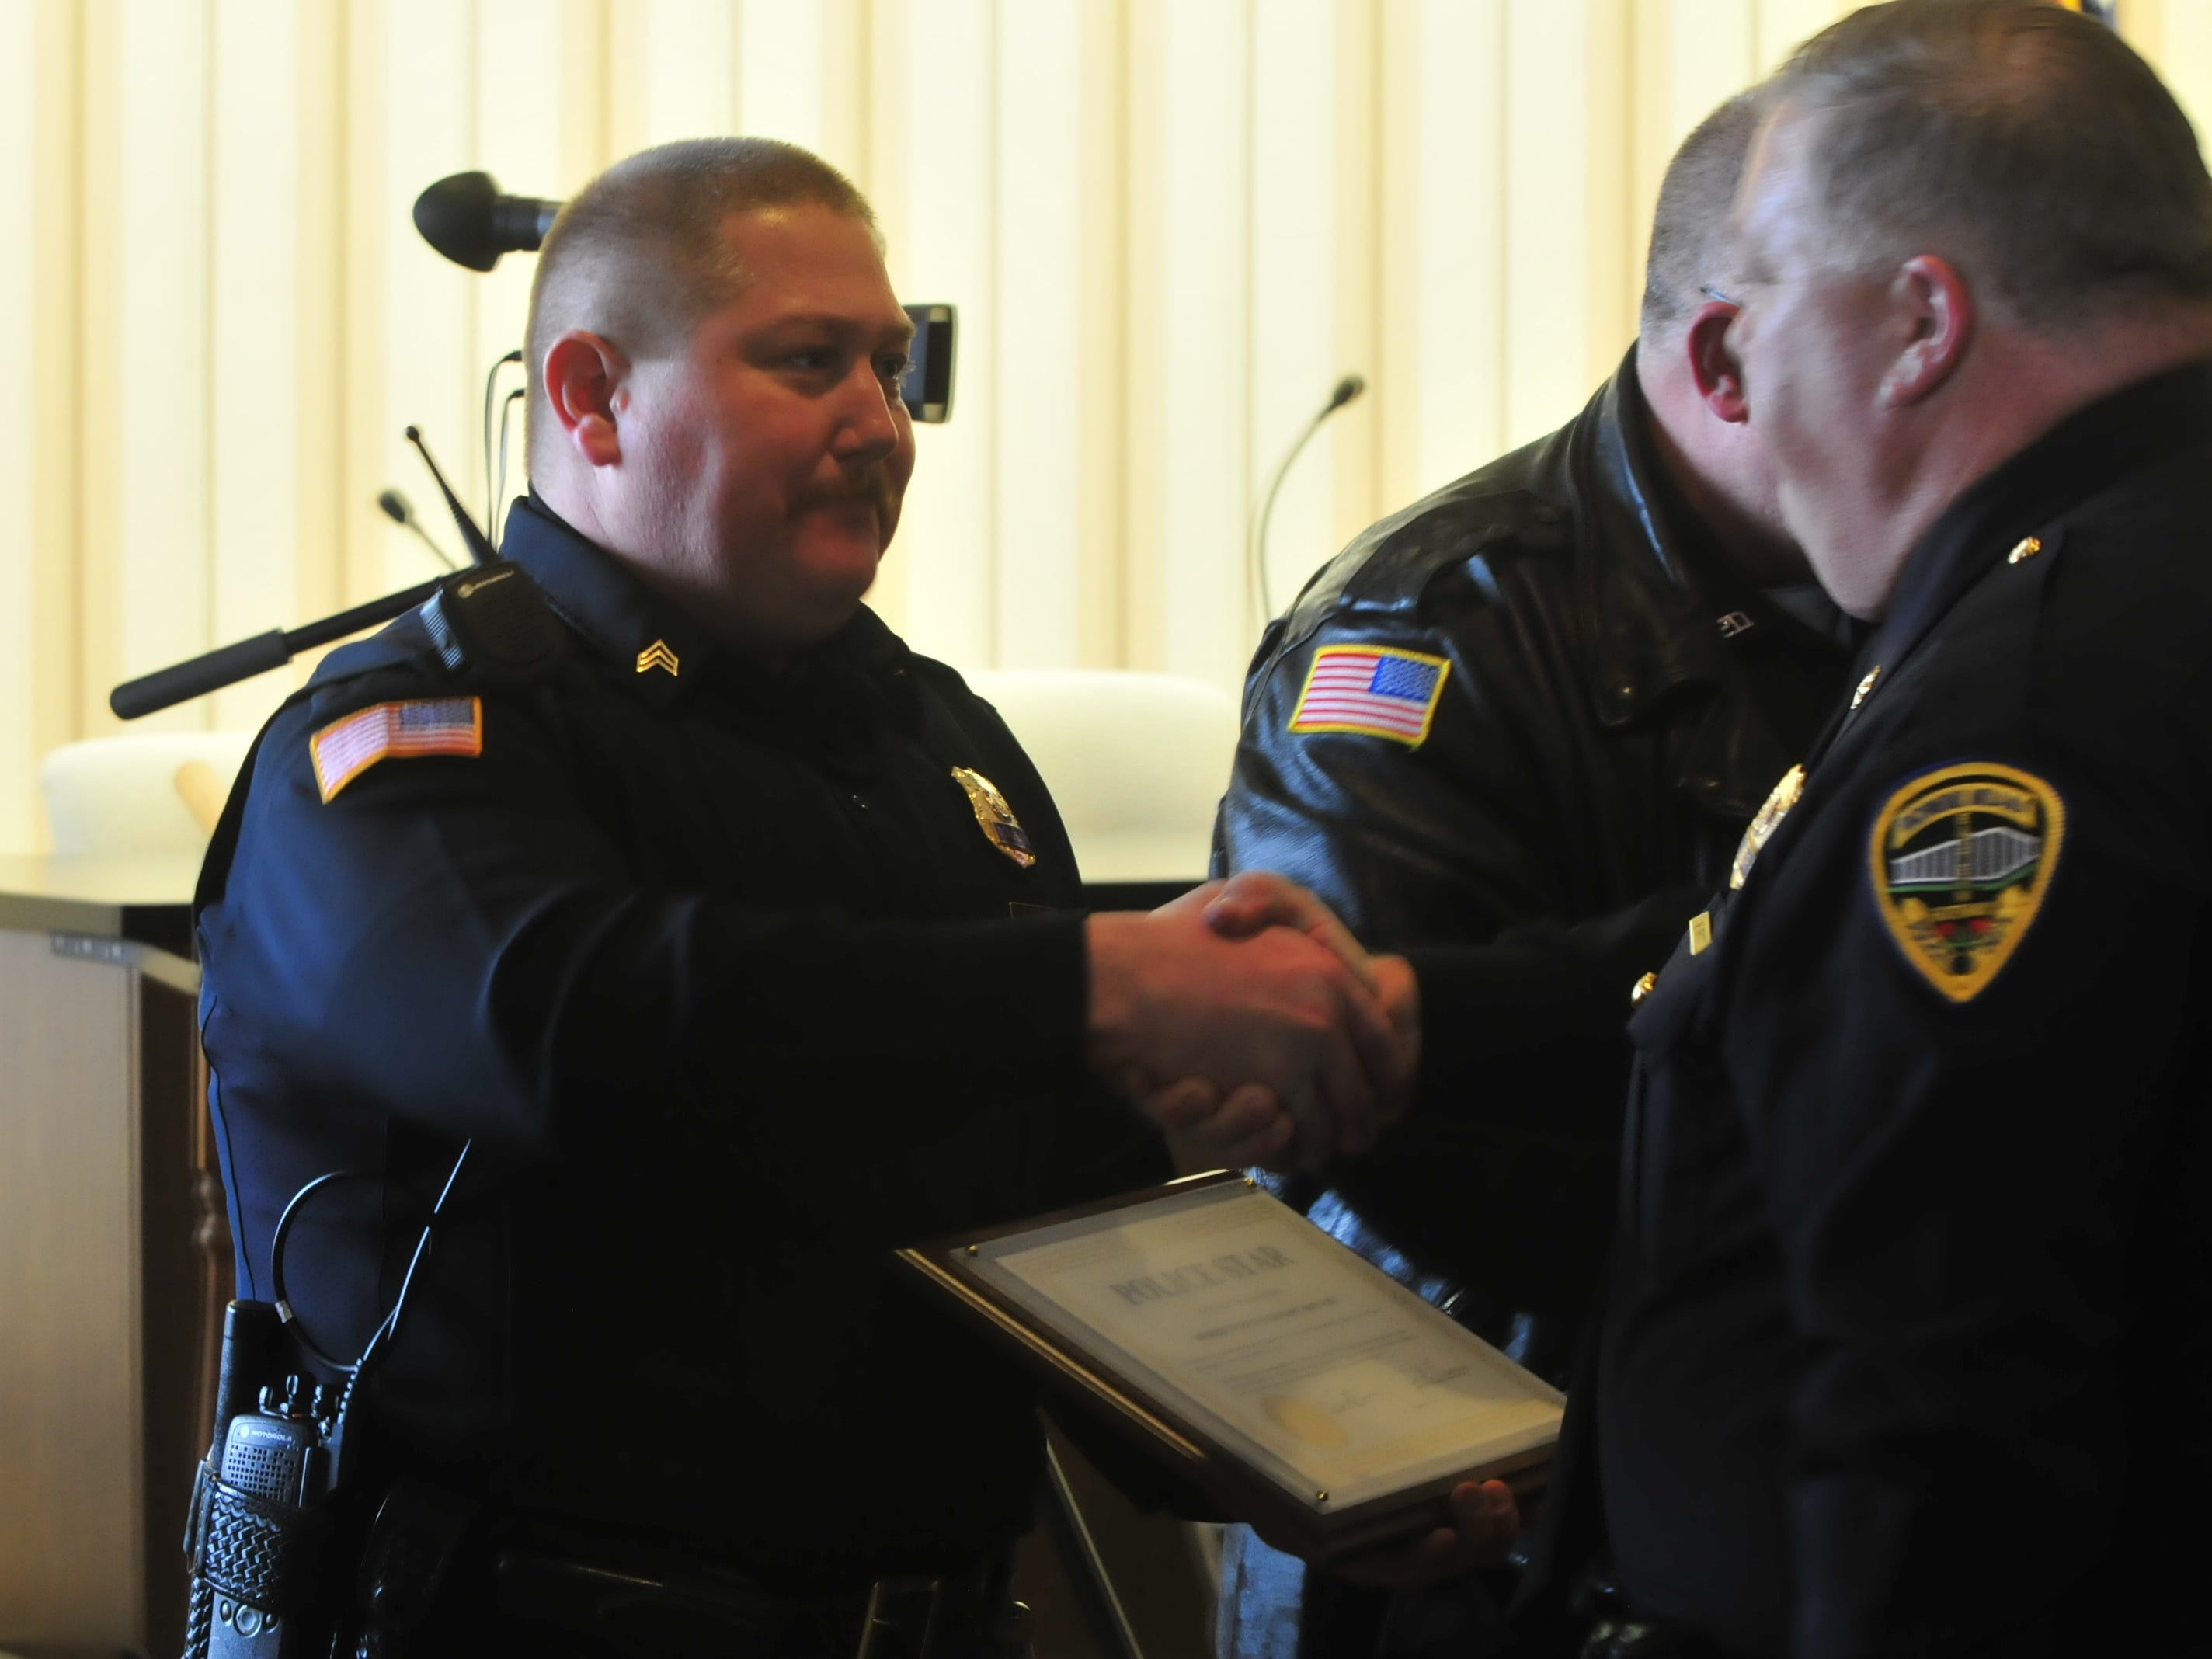 Sgt. Andrew Jury receives a Police Star award from Major Mike Britt on Monday.